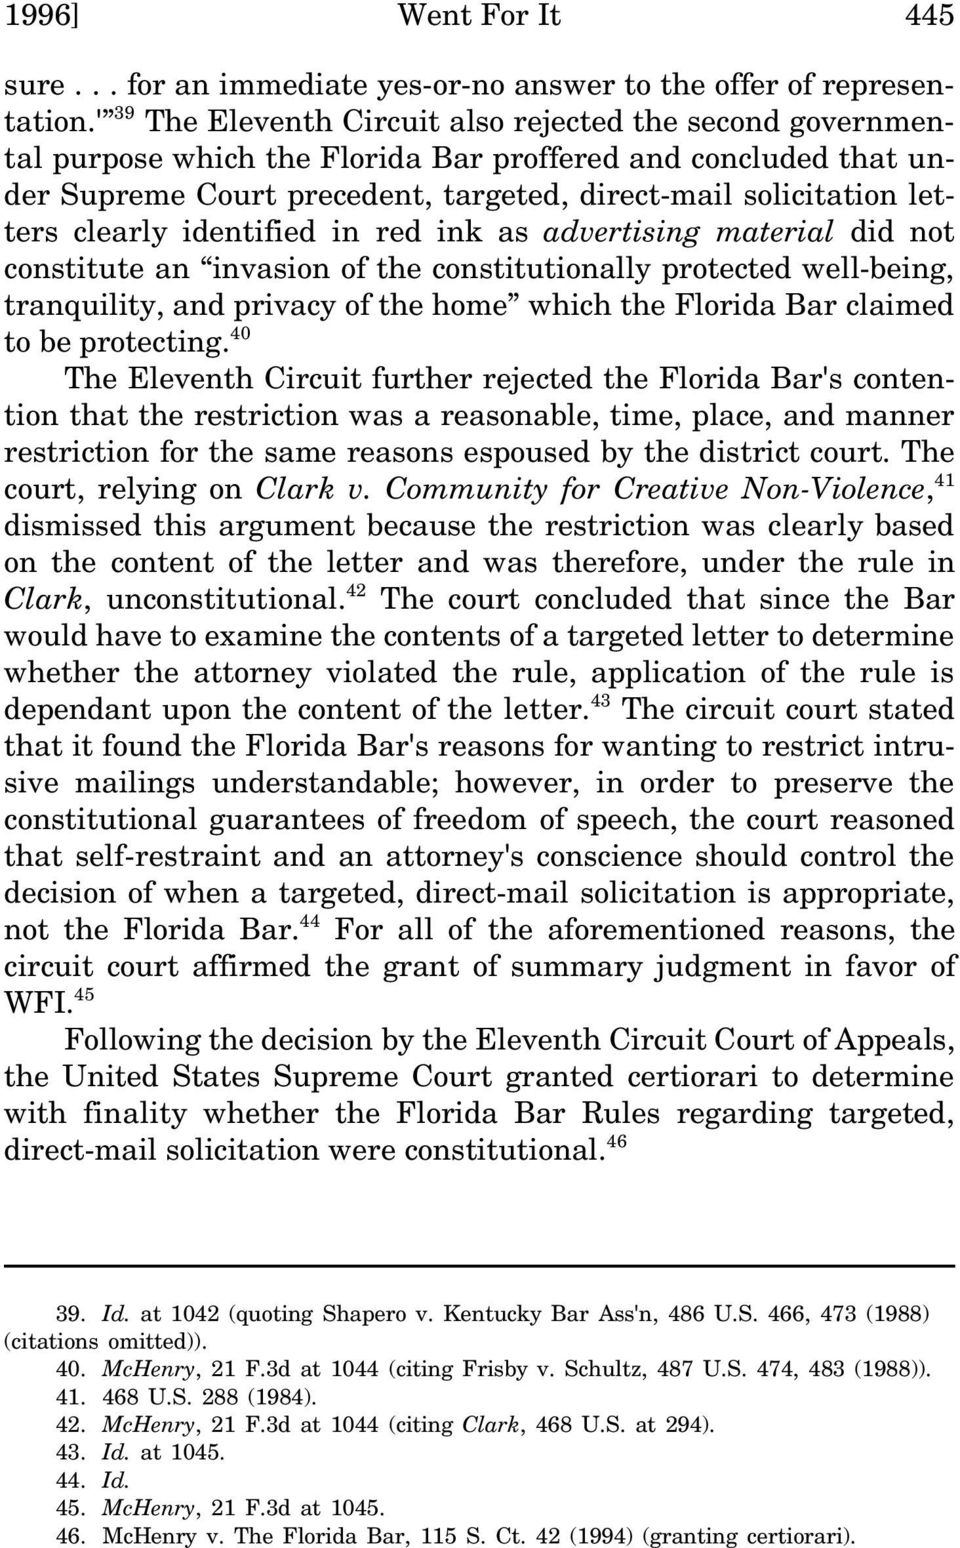 clearly identified in red ink as advertising material did not constitute an invasion of the constitutionally protected well-being, tranquility, and privacy of the home which the Florida Bar claimed